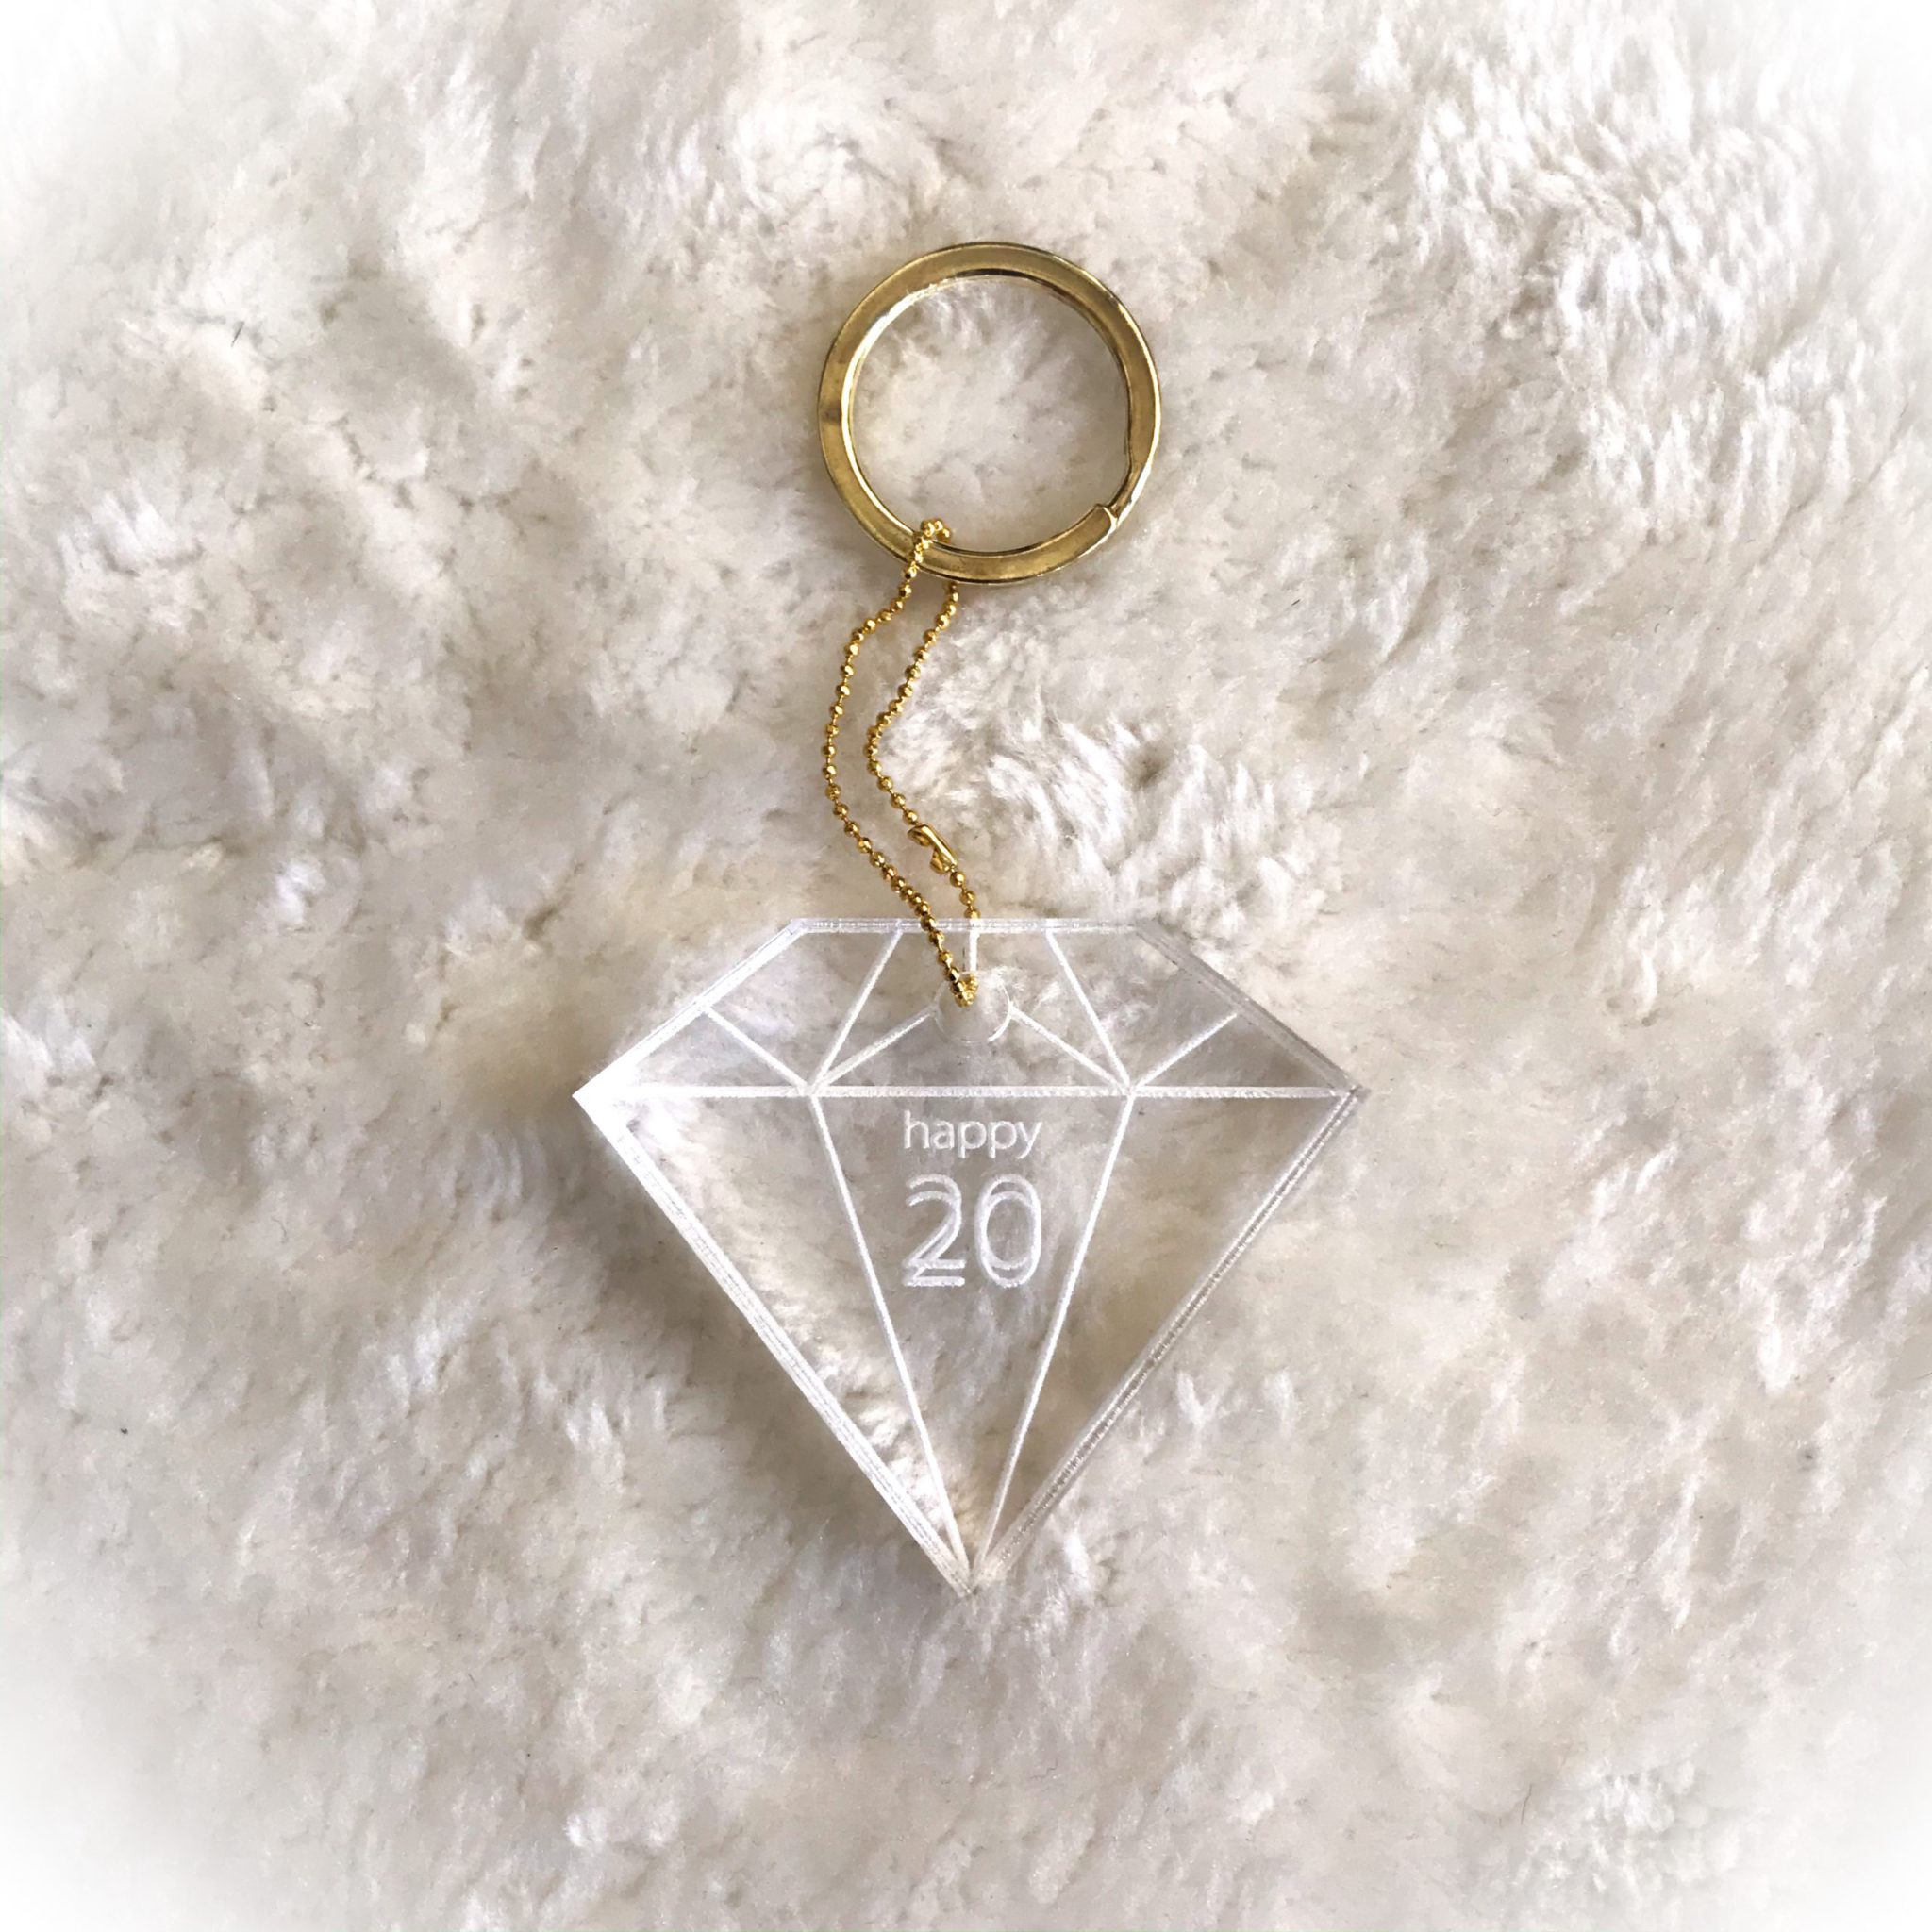 2020 Shine Bright Like A Diamond-special occasion-keychain